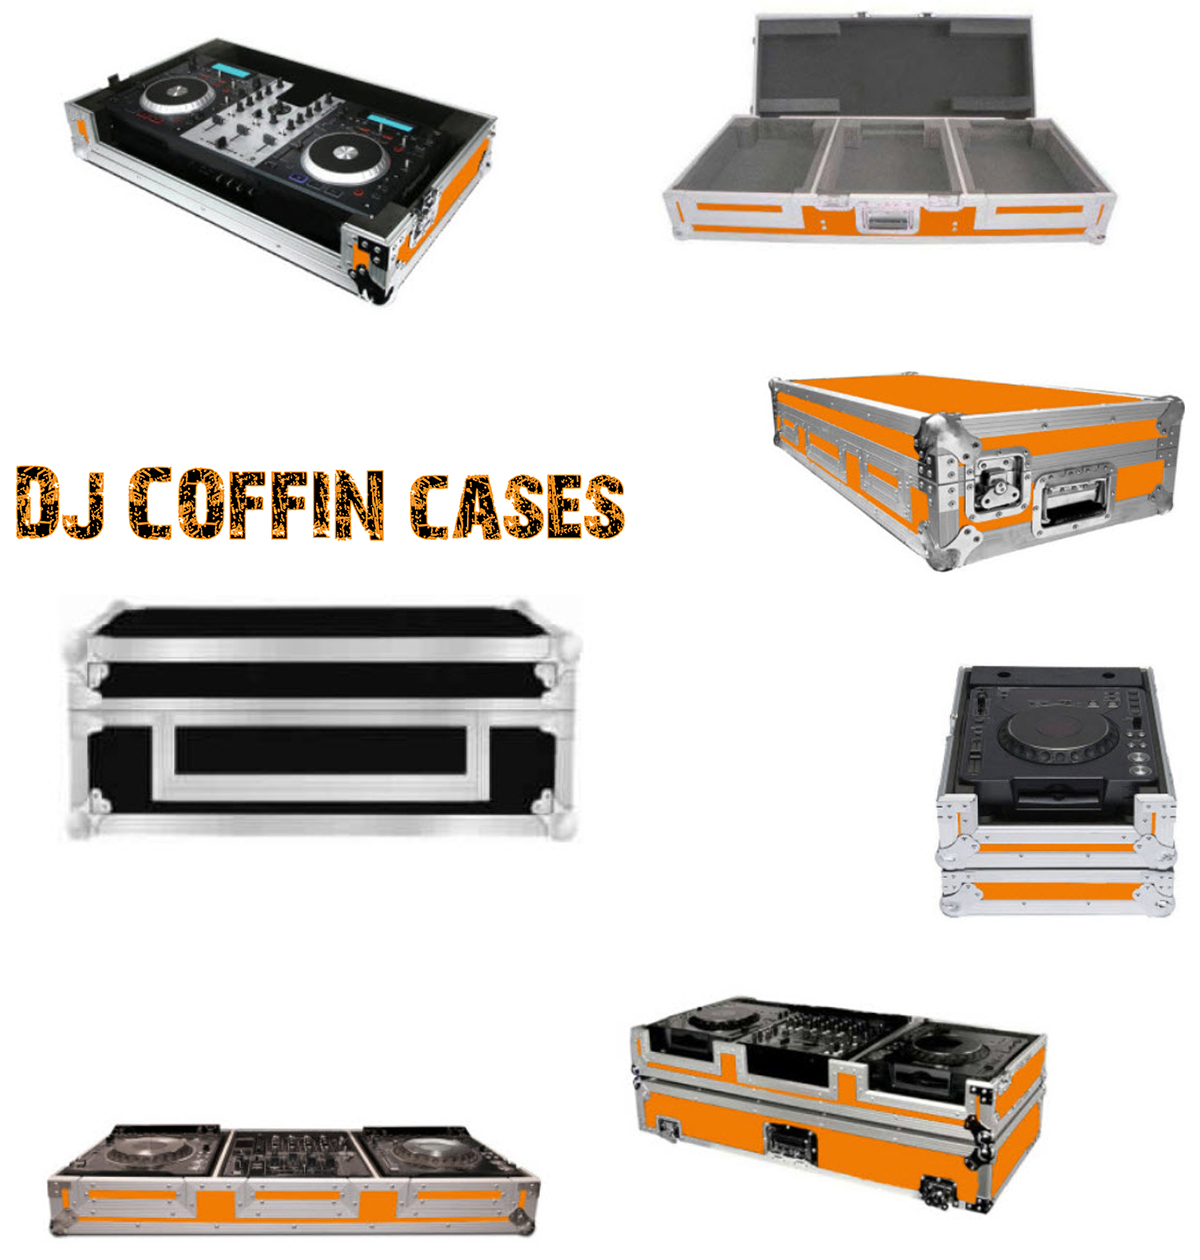 dj-coffin.jpg